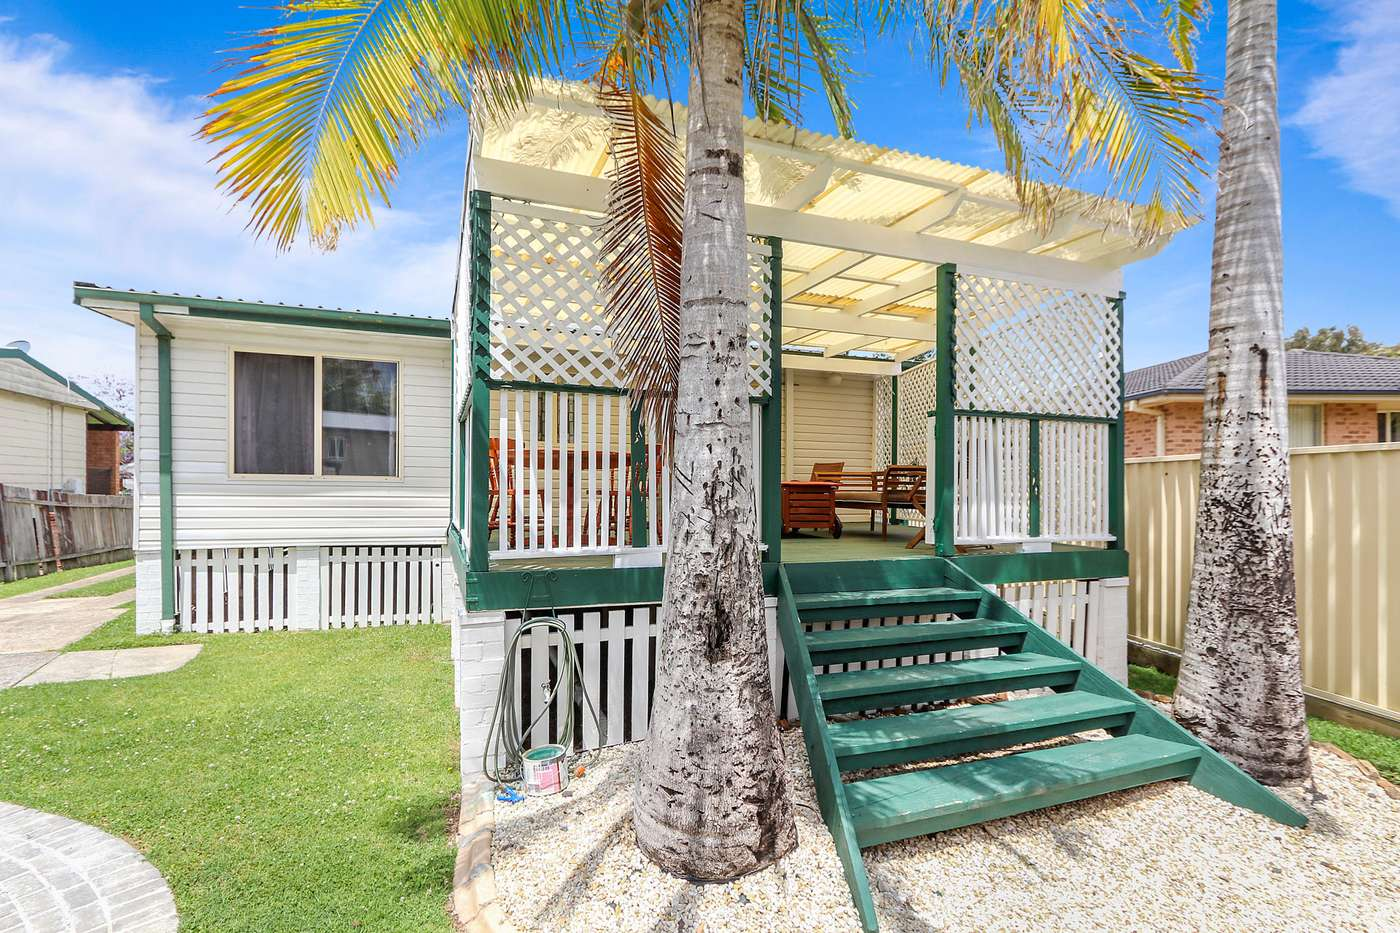 Main view of Homely house listing, 46 Warner Avenue, Wyong, NSW 2259